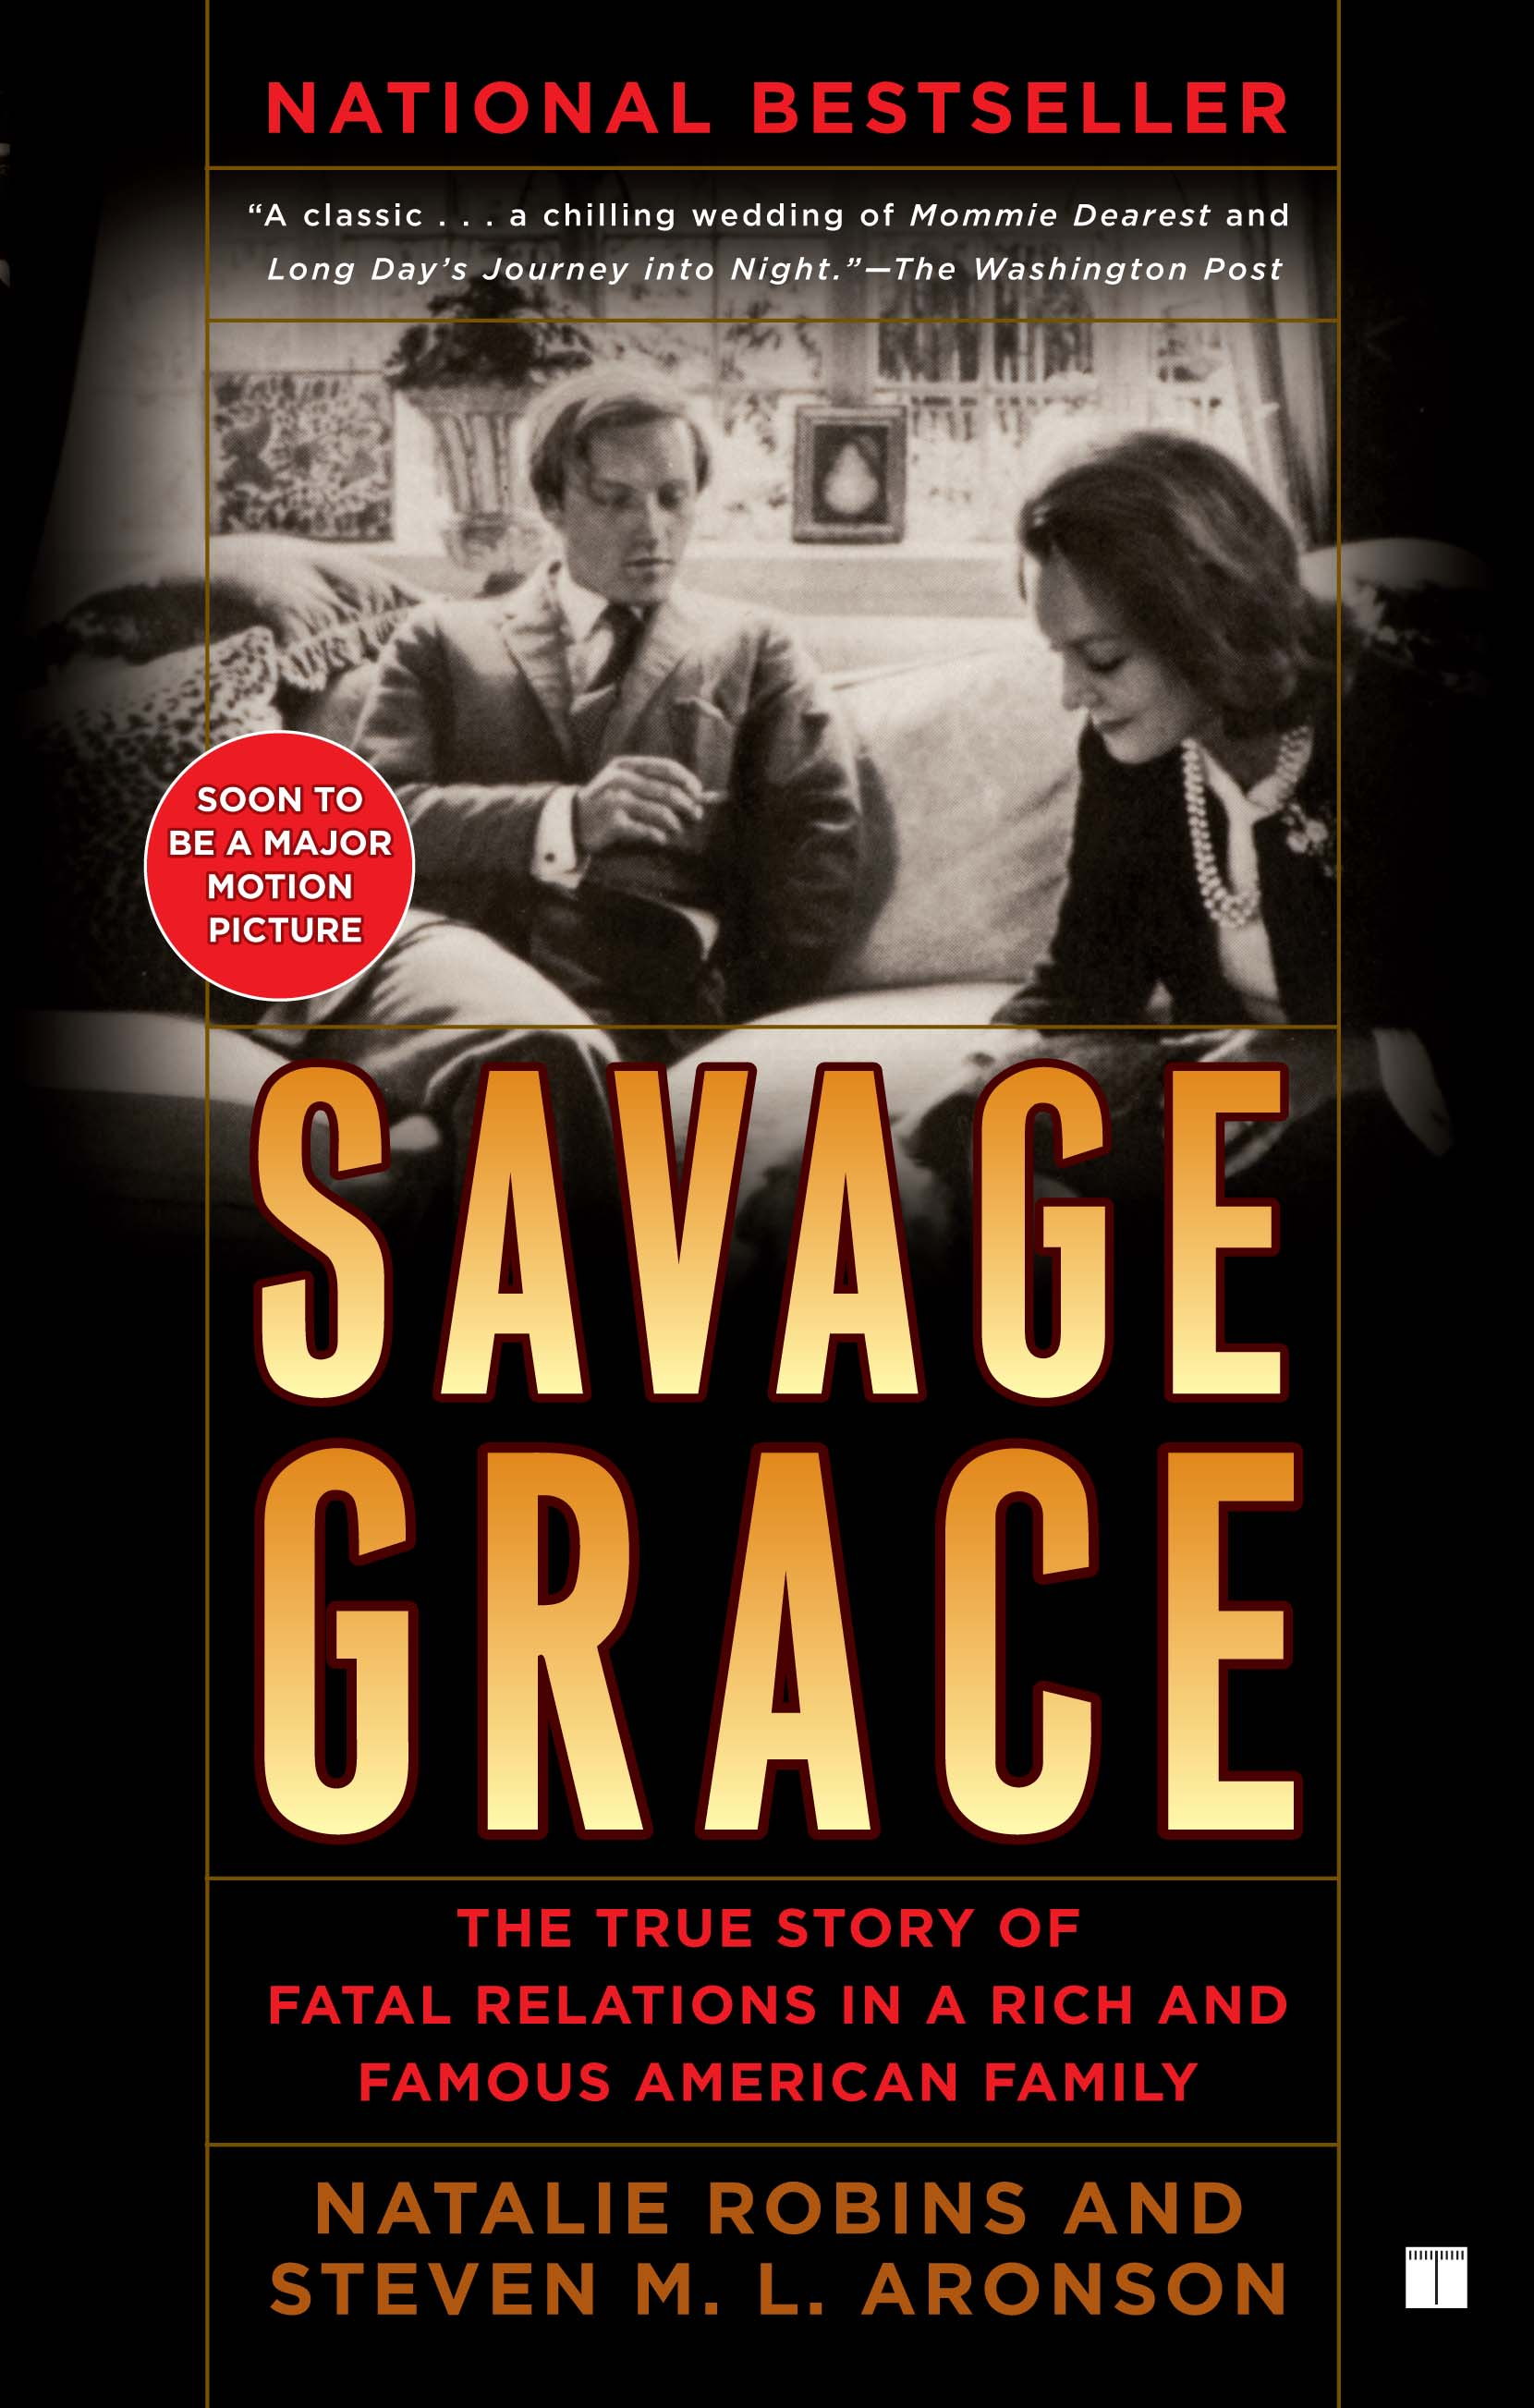 Savage grace book by natalie robins steven ml aronson 9781416572961 hr savage grace fandeluxe Document